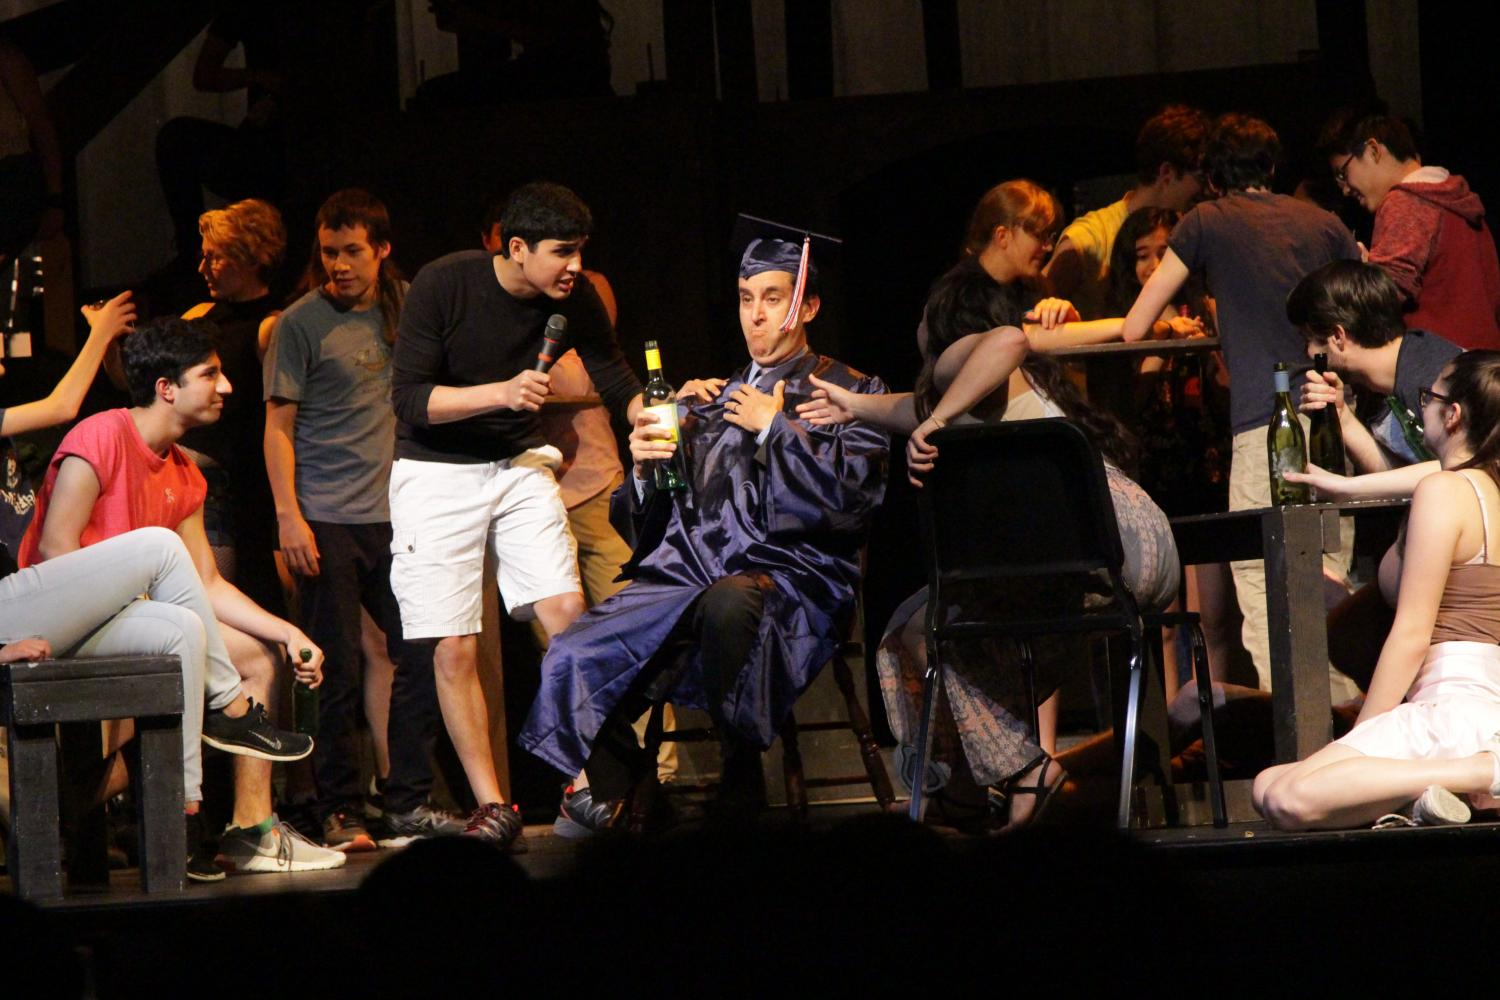 Dr.+Glazer+performs+his+role+in+Les+Miserables%2C+one+last+time+before+he+leaves+TJ.%0A